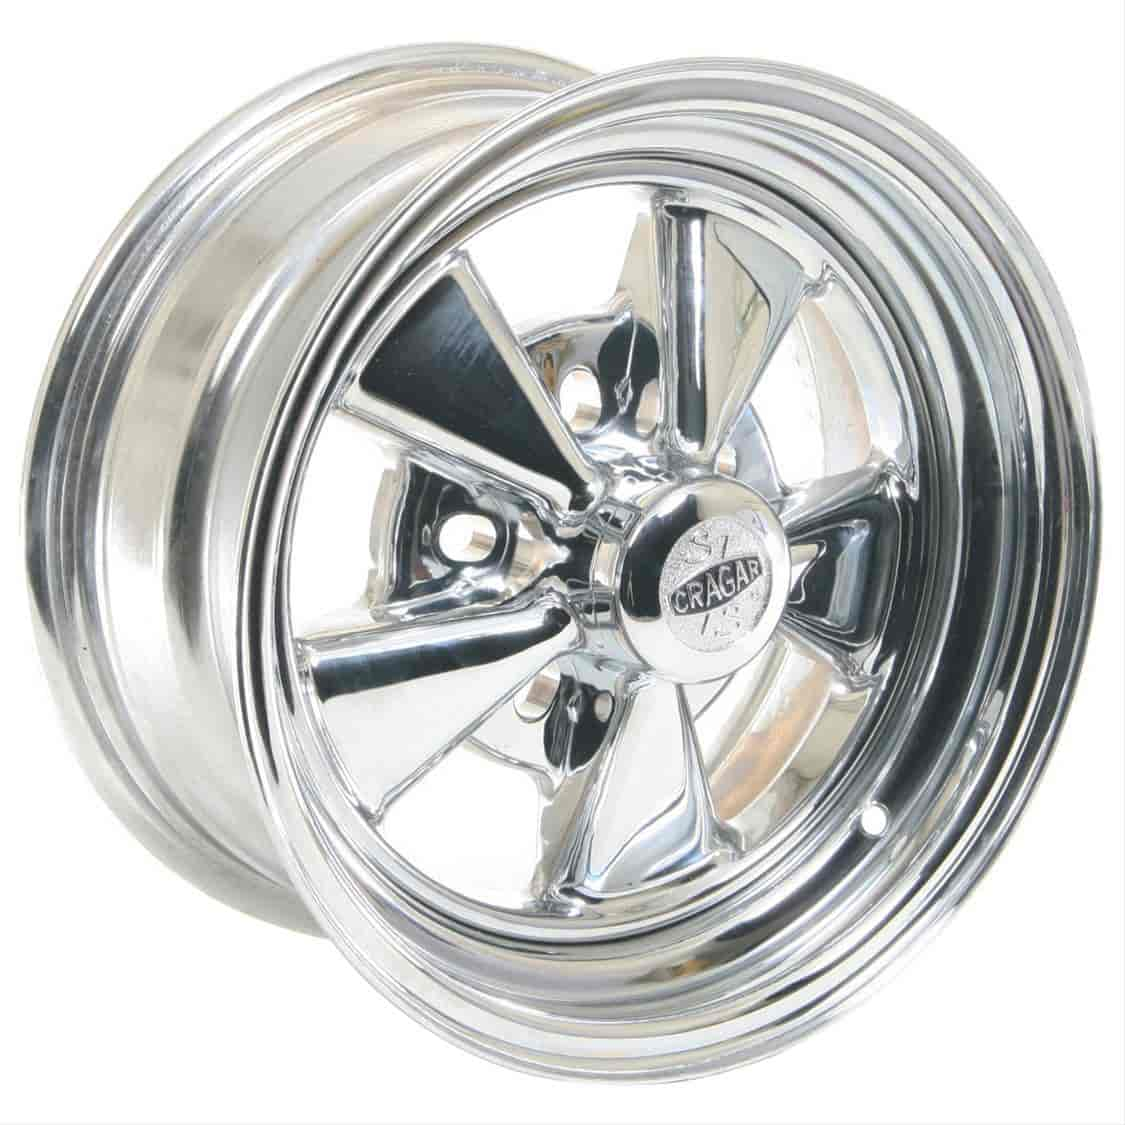 Cragar 61415 - Cragar 08/61 Series S/S Super Sport Wheels